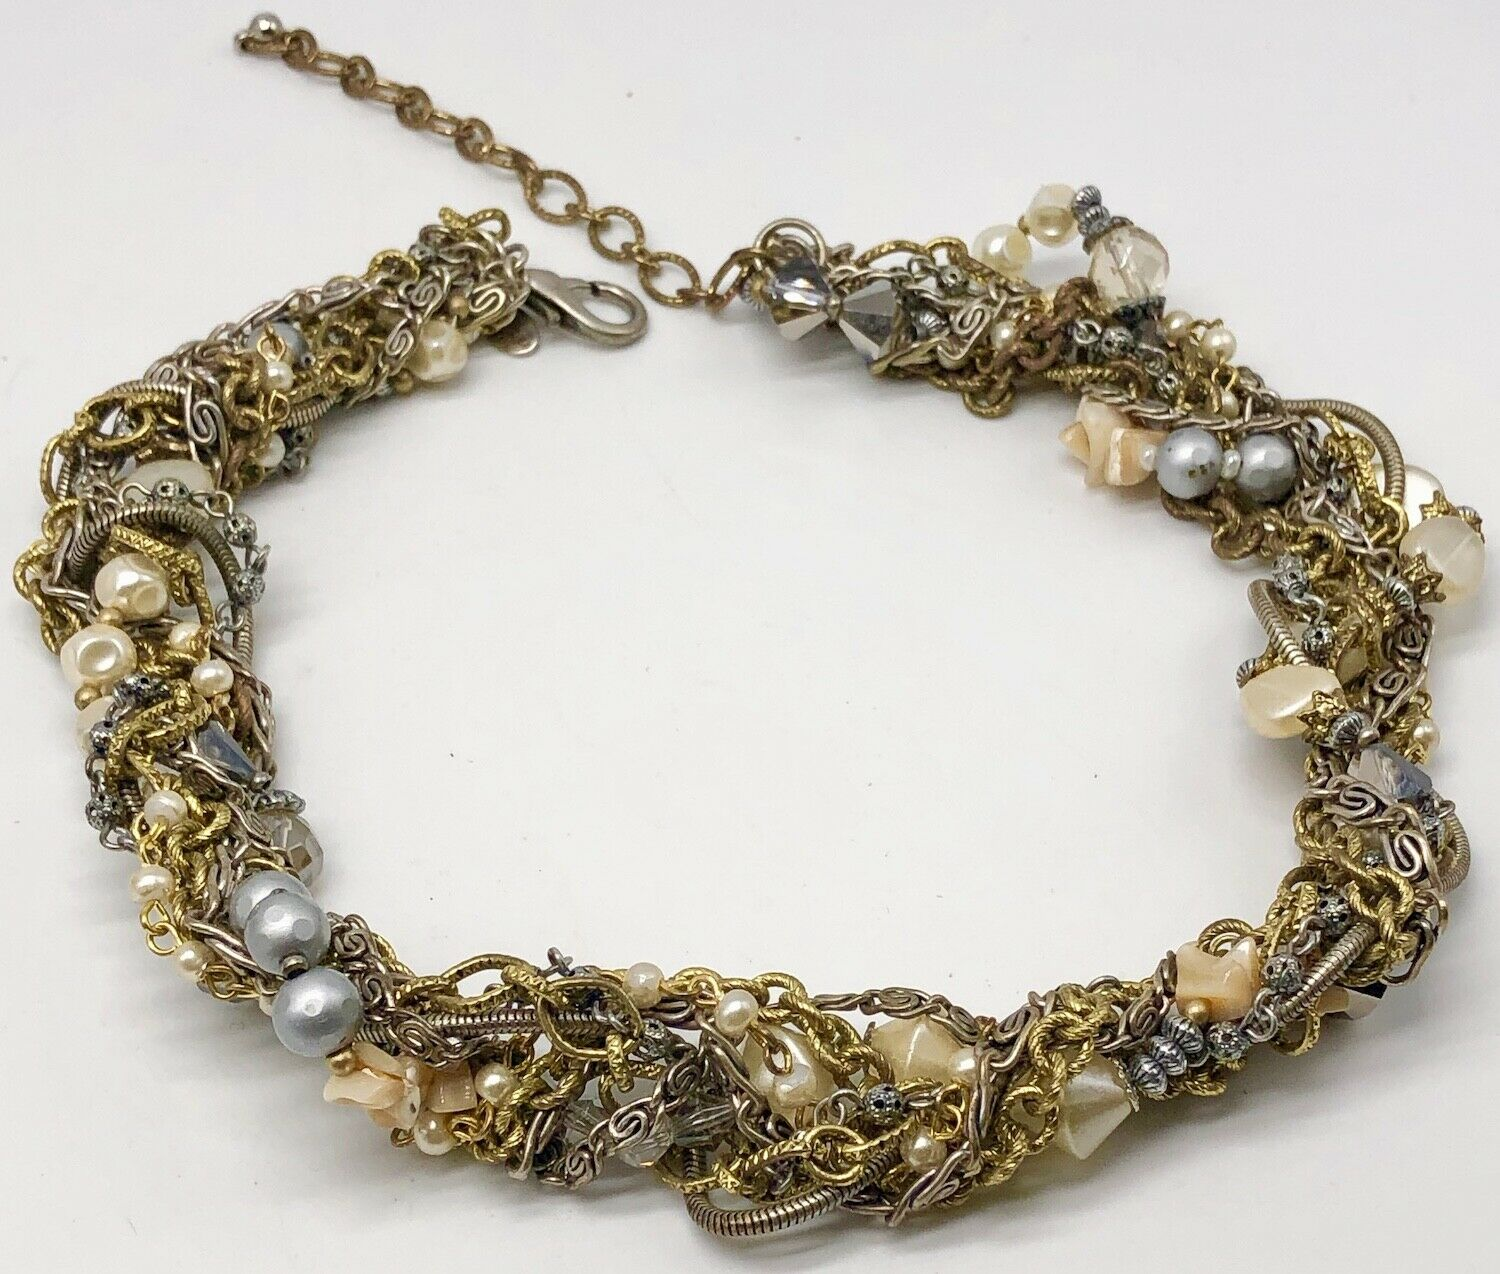 New Chico's Twisted Chains with Faux Pearls and Beads